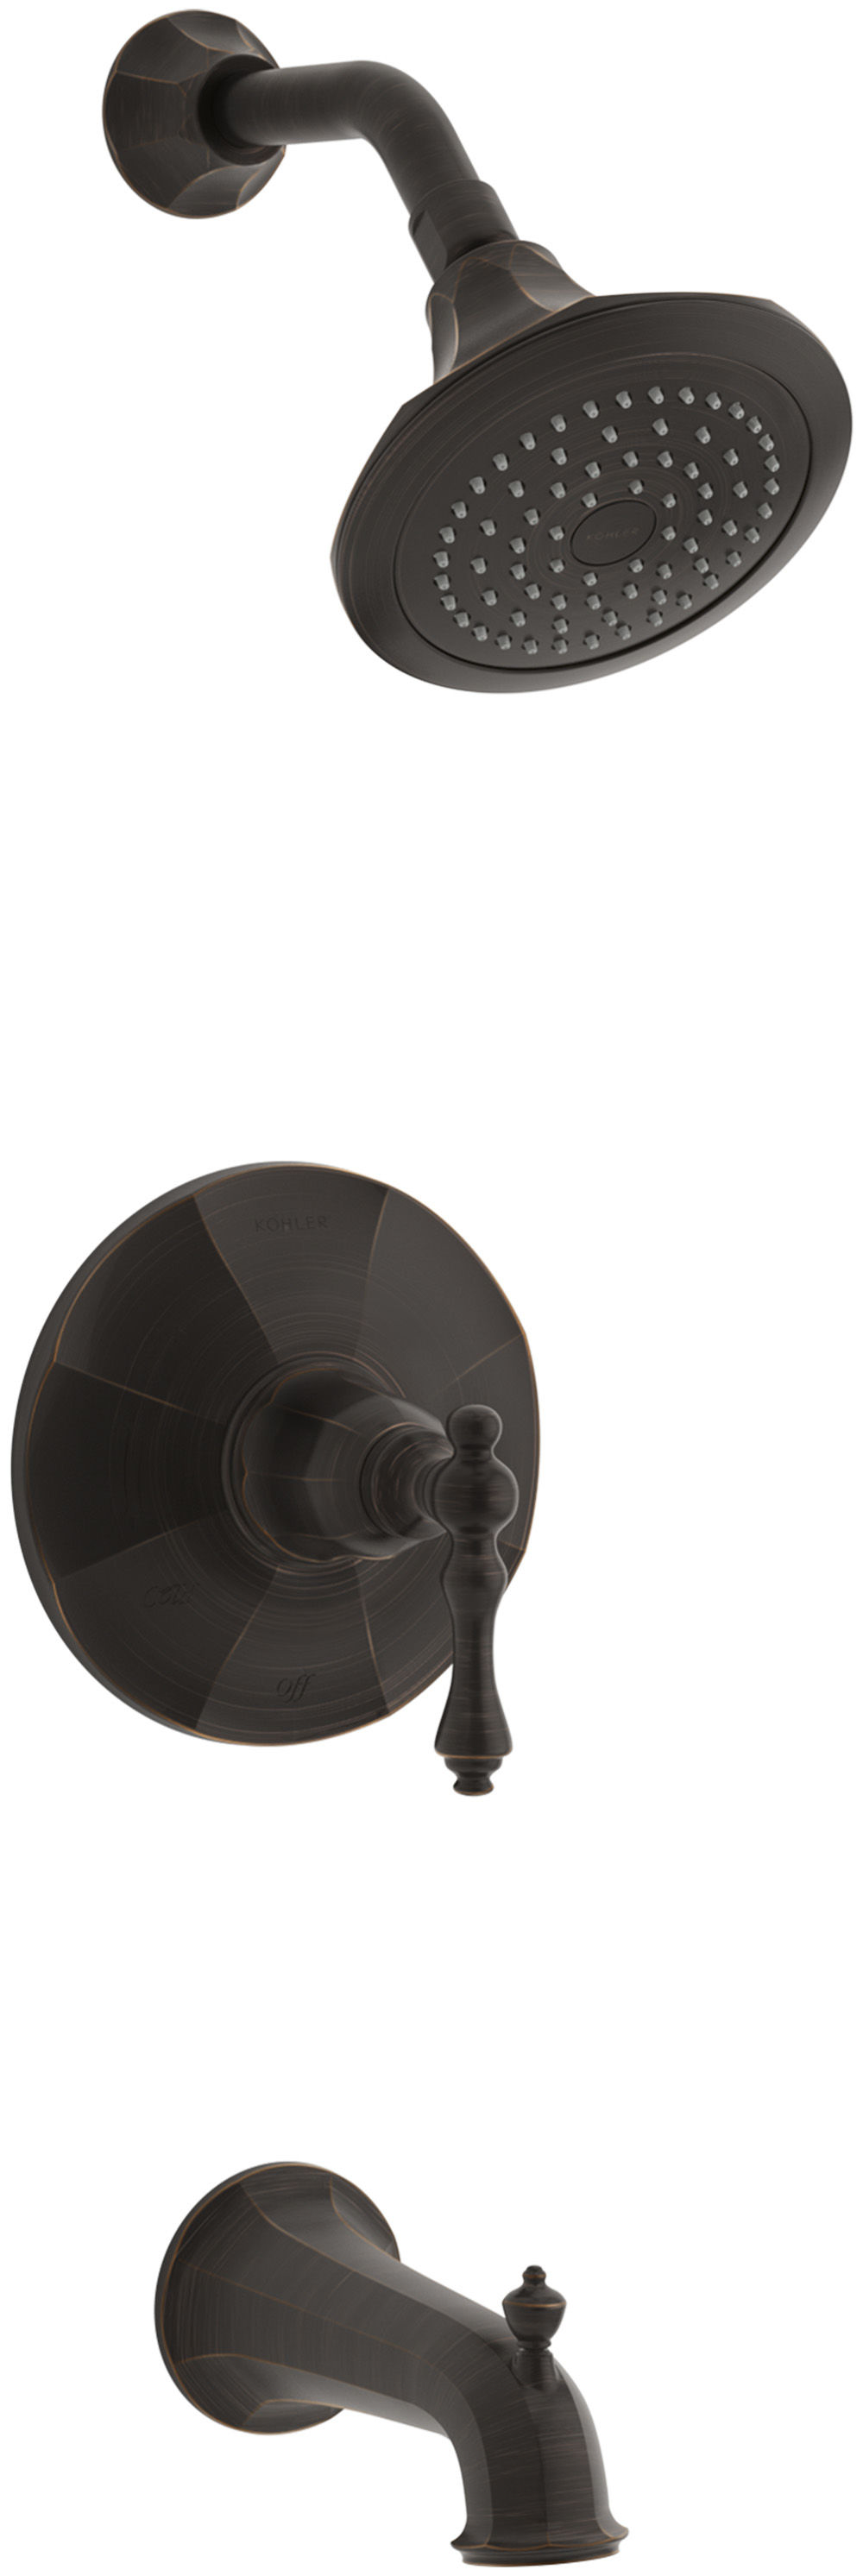 Kohler K-T13492-4-BRZ Oil Rubbed Bronze (BRZ) Kelston Rite-Temp Tub ...